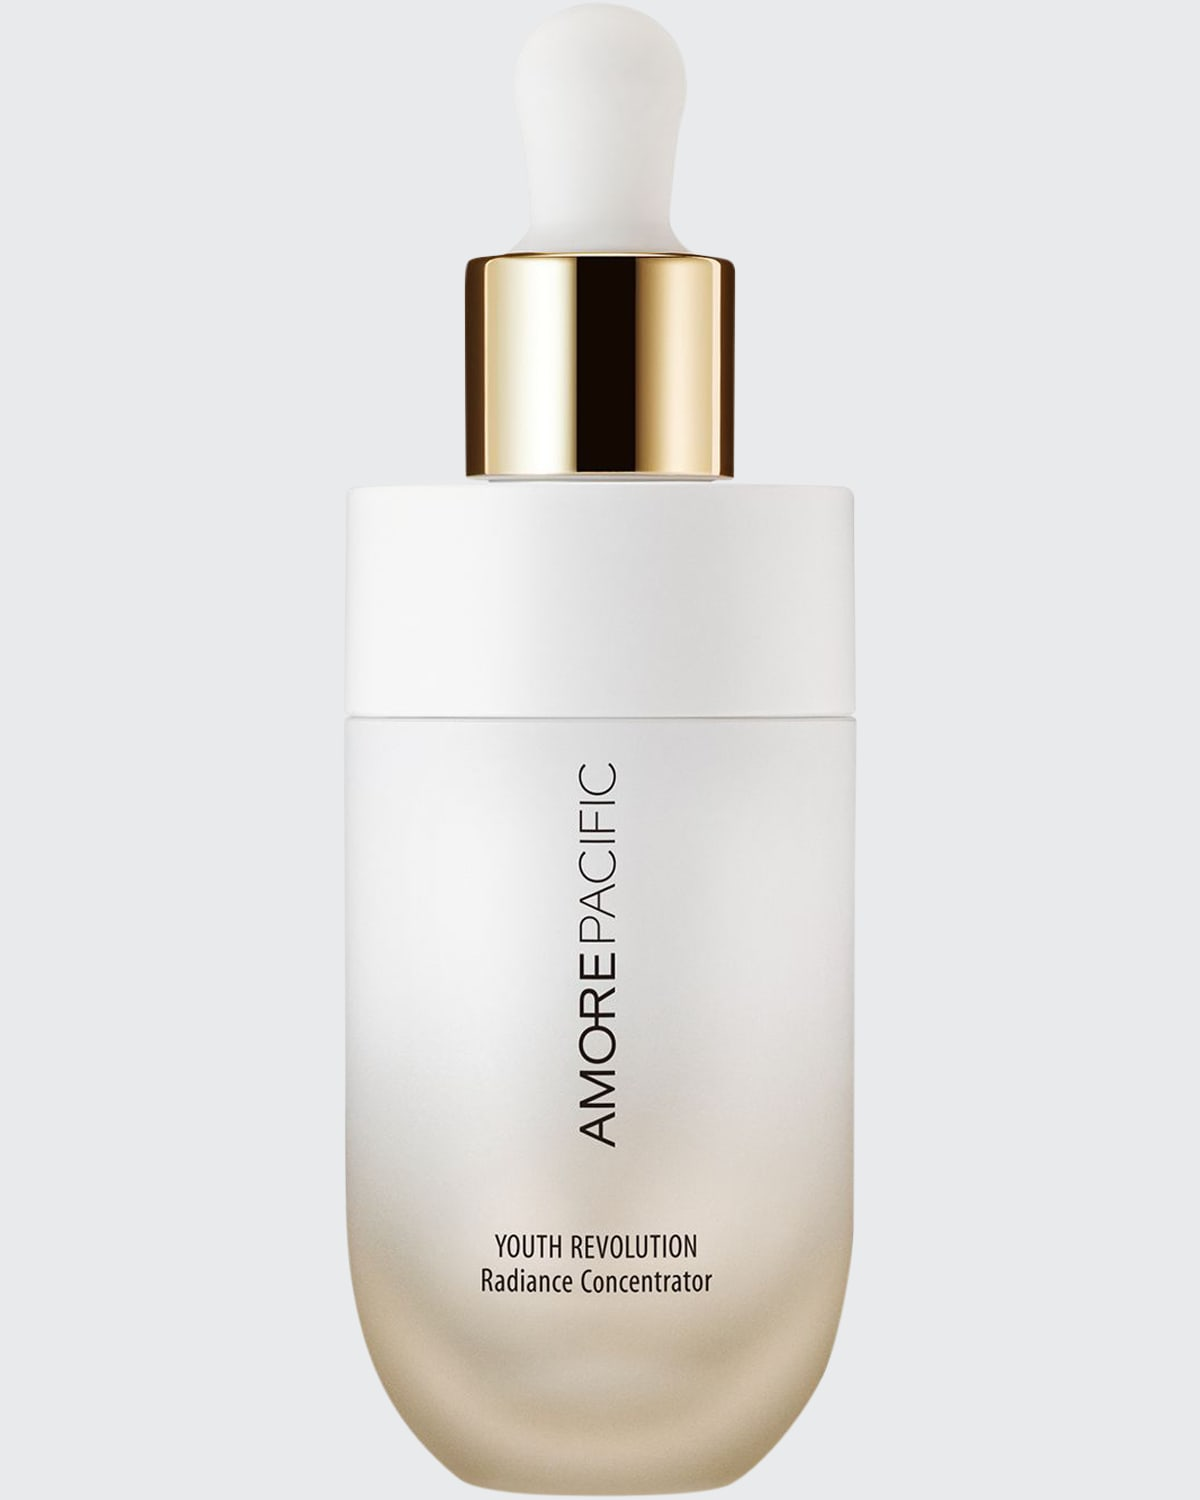 YOUTH REVOLUTION Radiance Concentrator